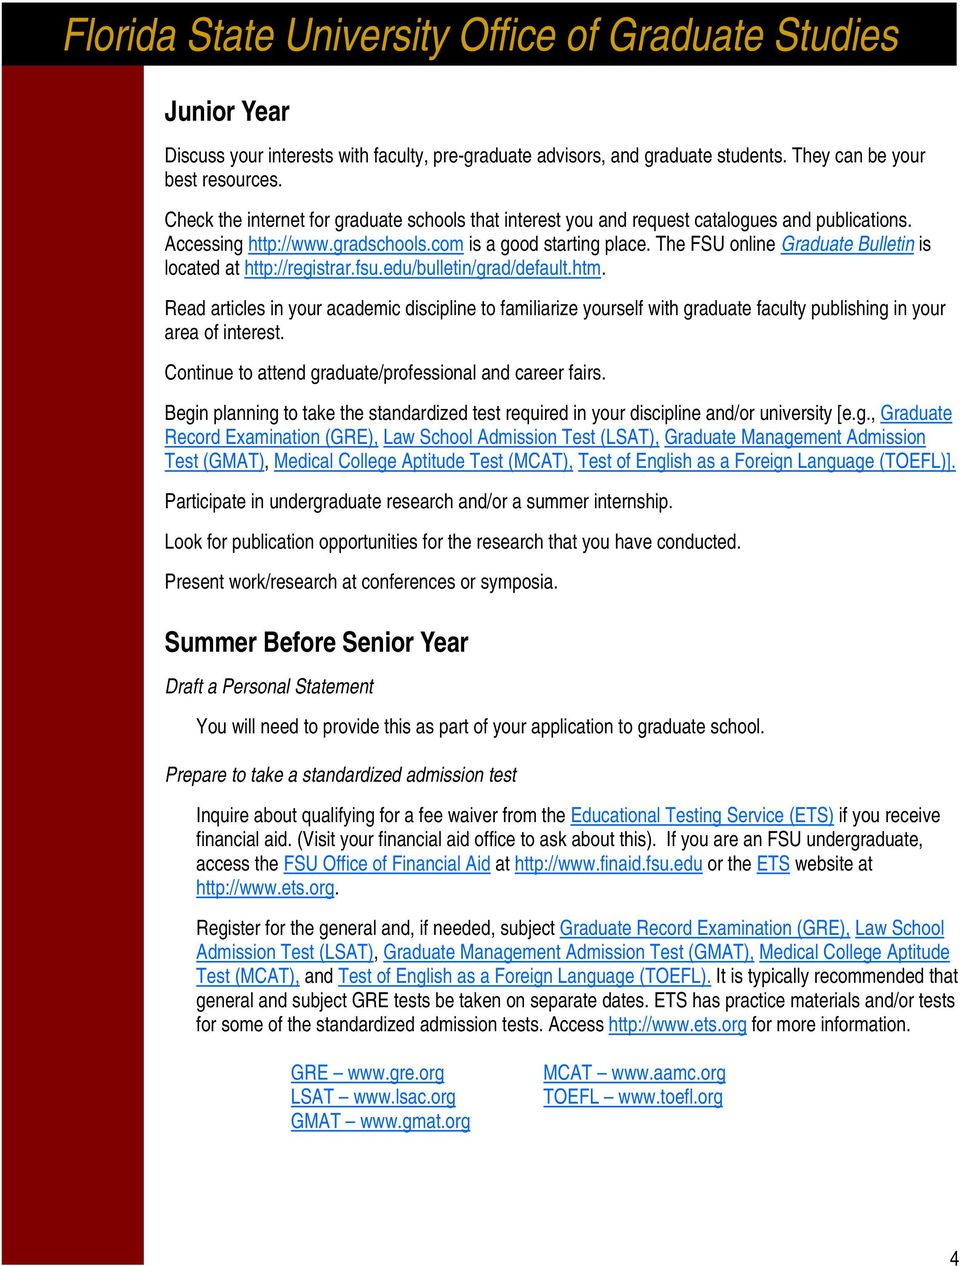 The FSU online Graduate Bulletin is located at http://registrar.fsu.edu/bulletin/grad/default.htm.